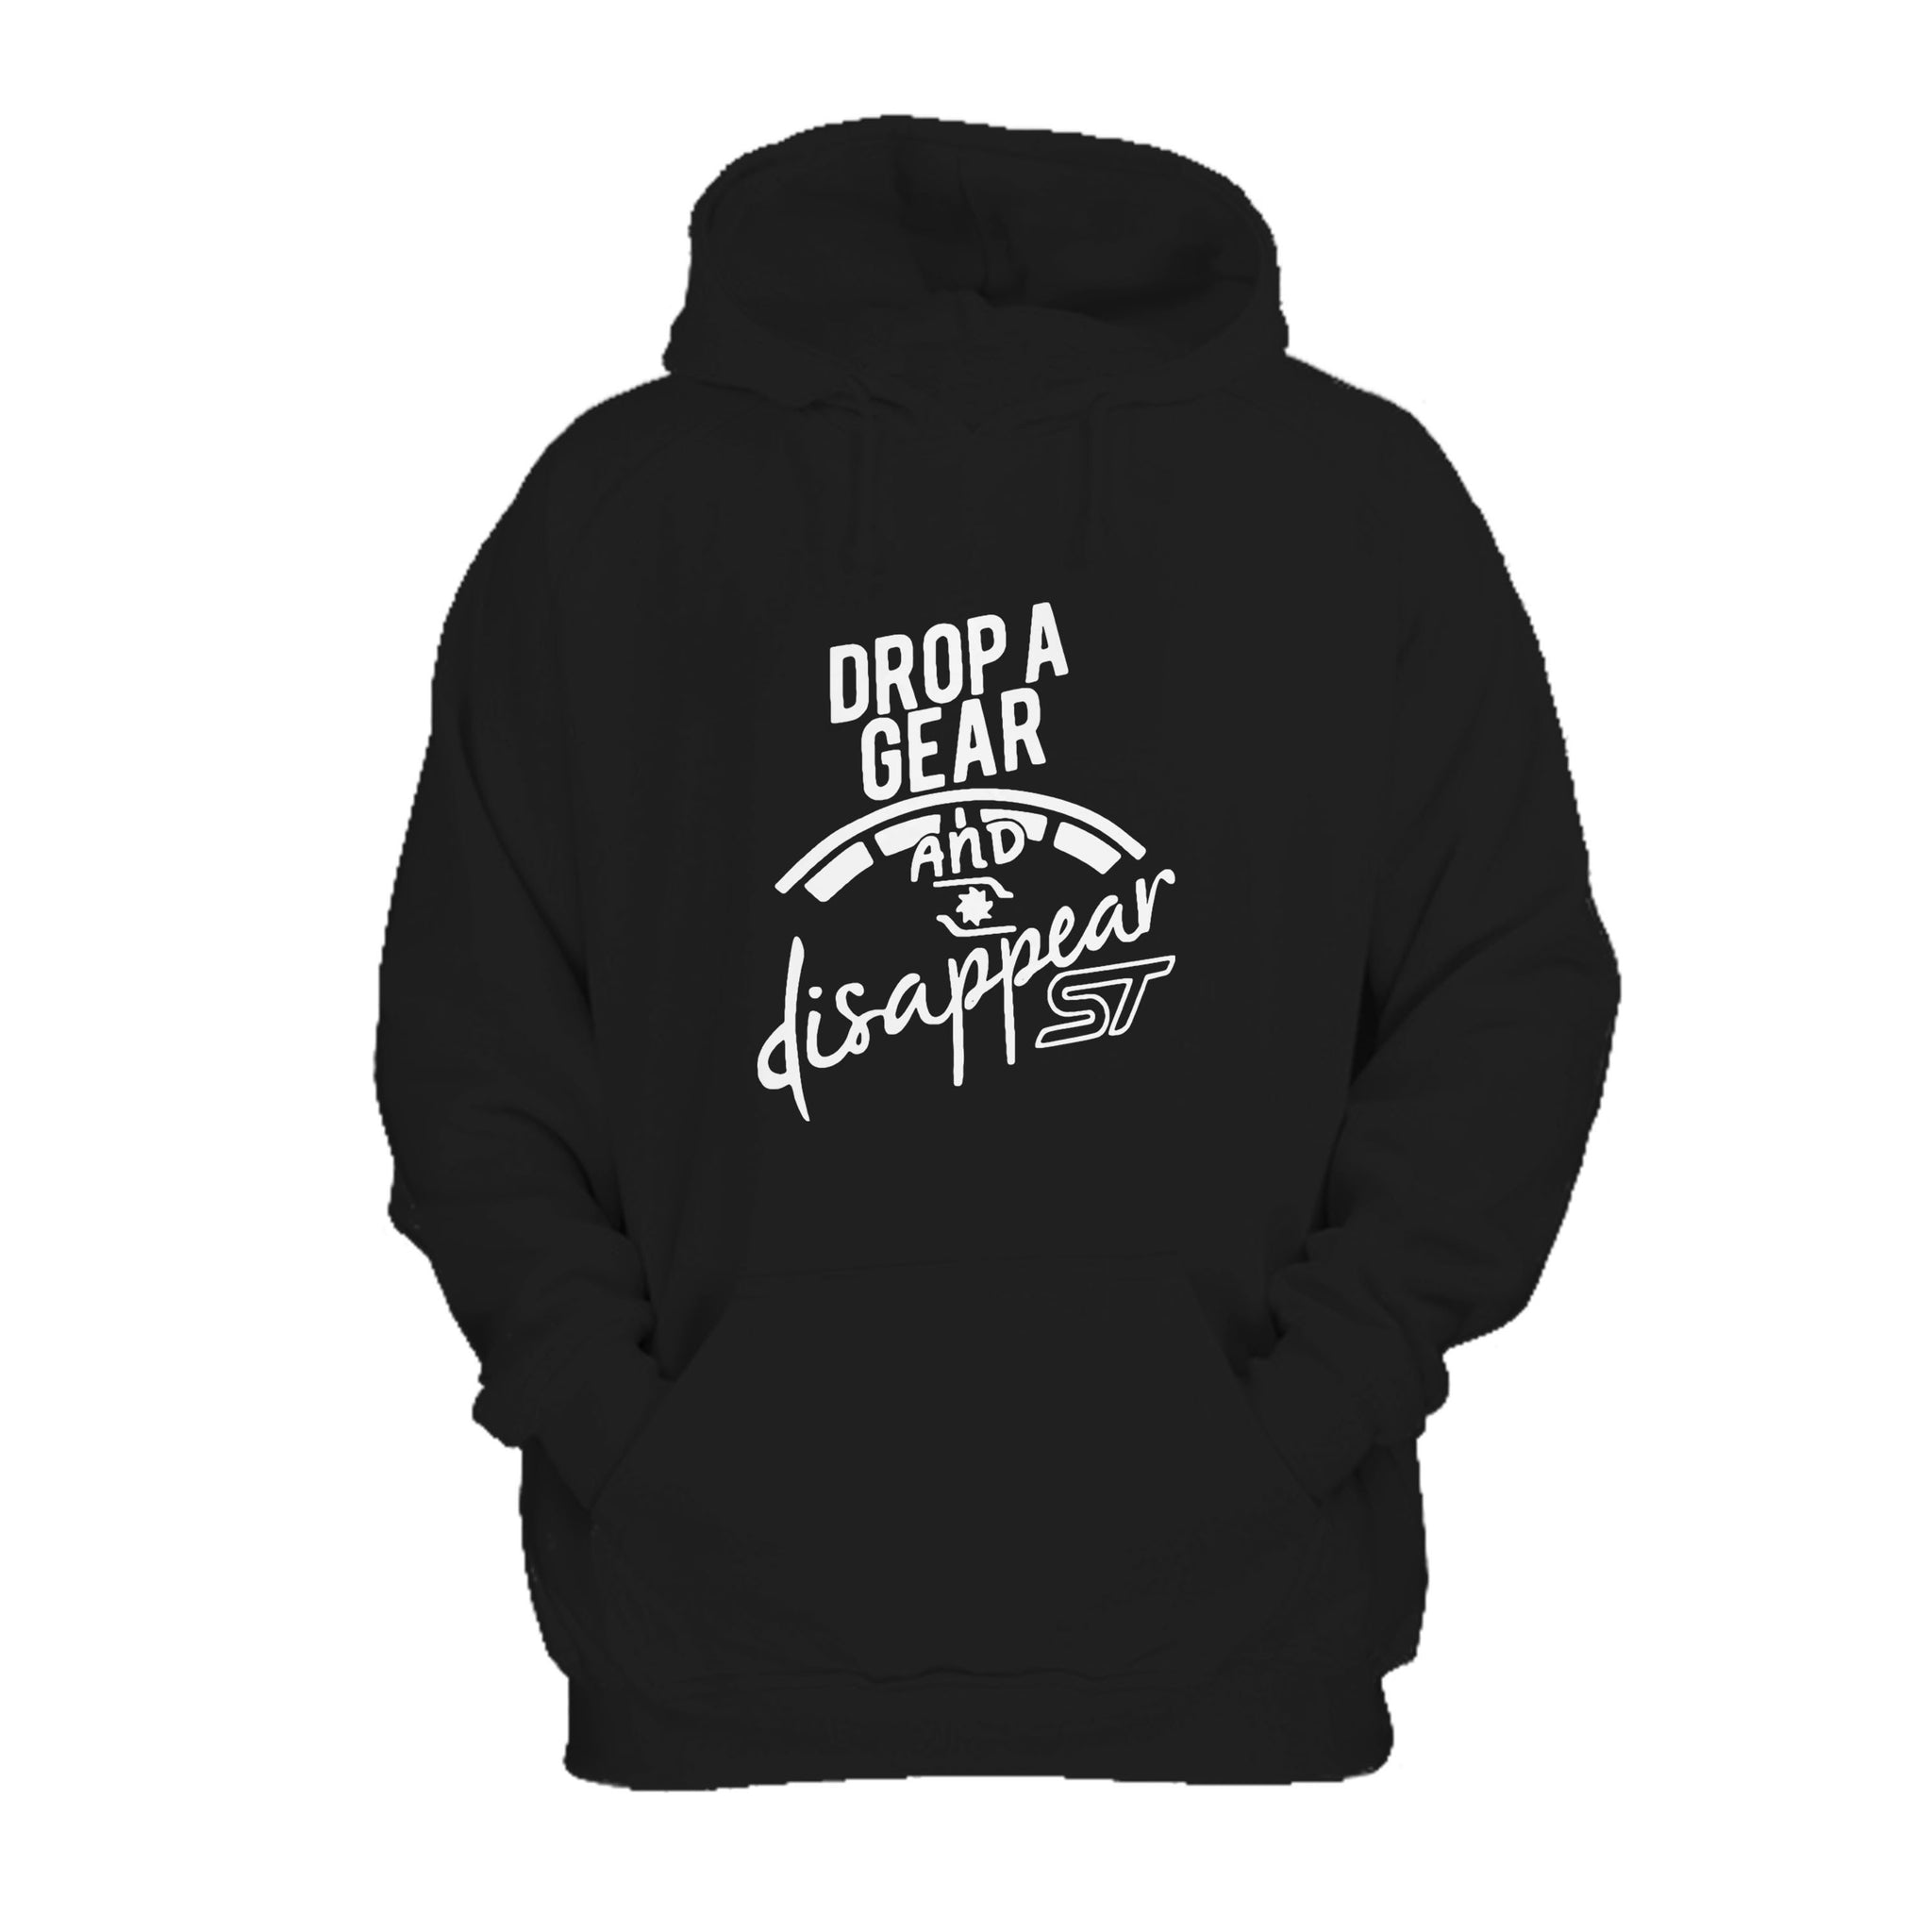 Drop A Gear Focus St Rs Ford Boost Cars Fost Ecoboost Boosquig Hoodie